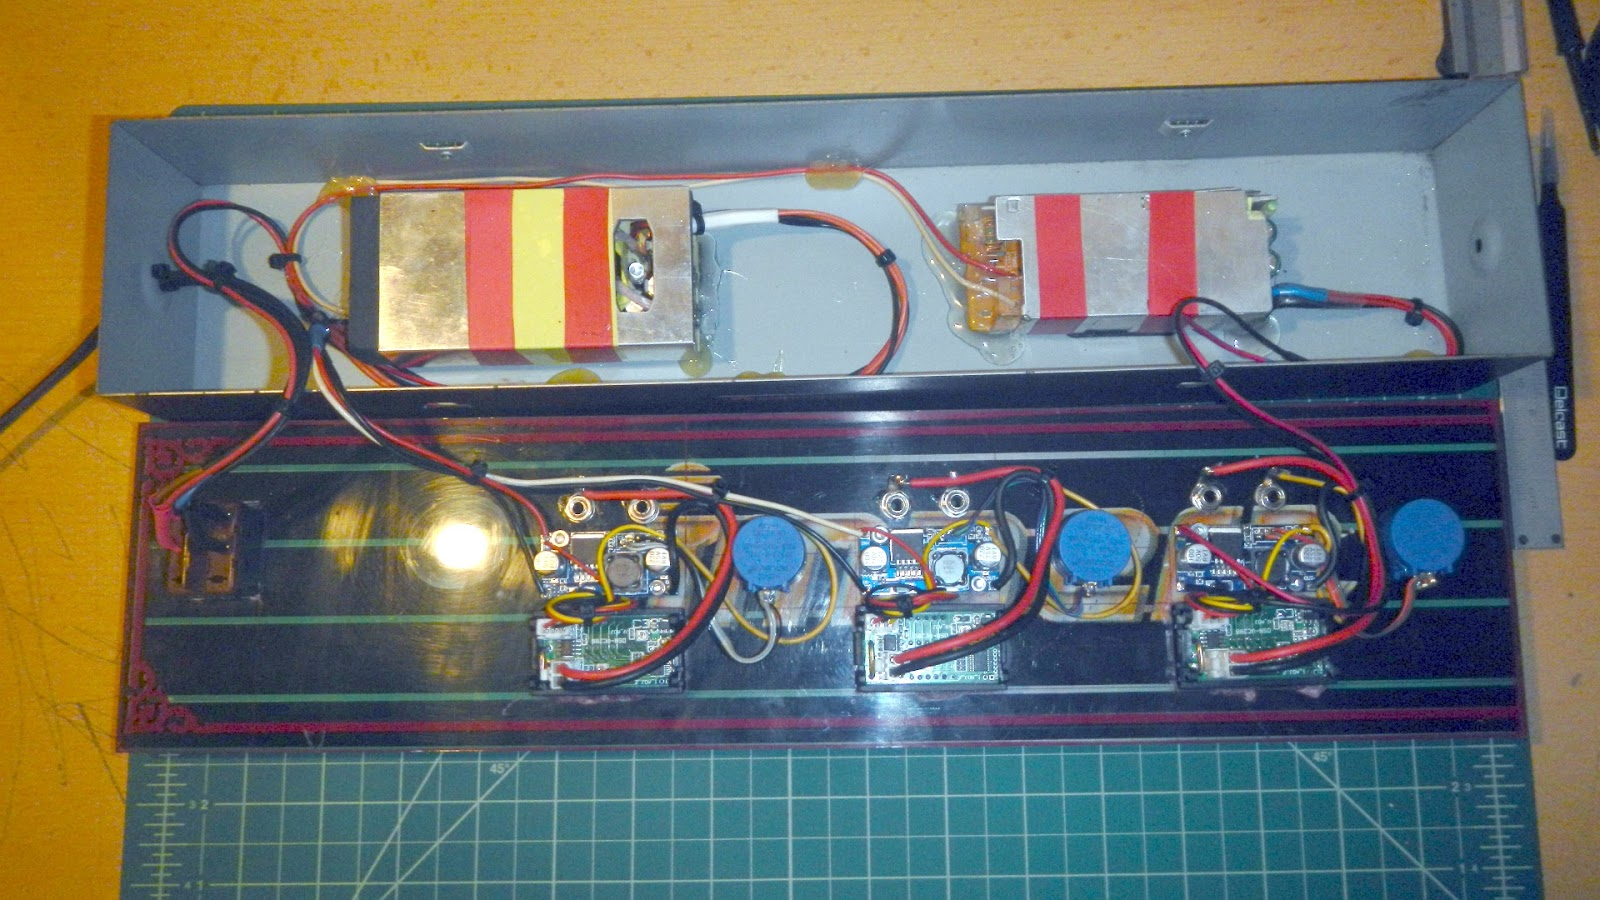 Elvis diy electronics projects power supply unit variable triple and that would be it i wanted to show you how you can easily do this yourself with little effort and use old devices that usually collect dust in many solutioingenieria Images